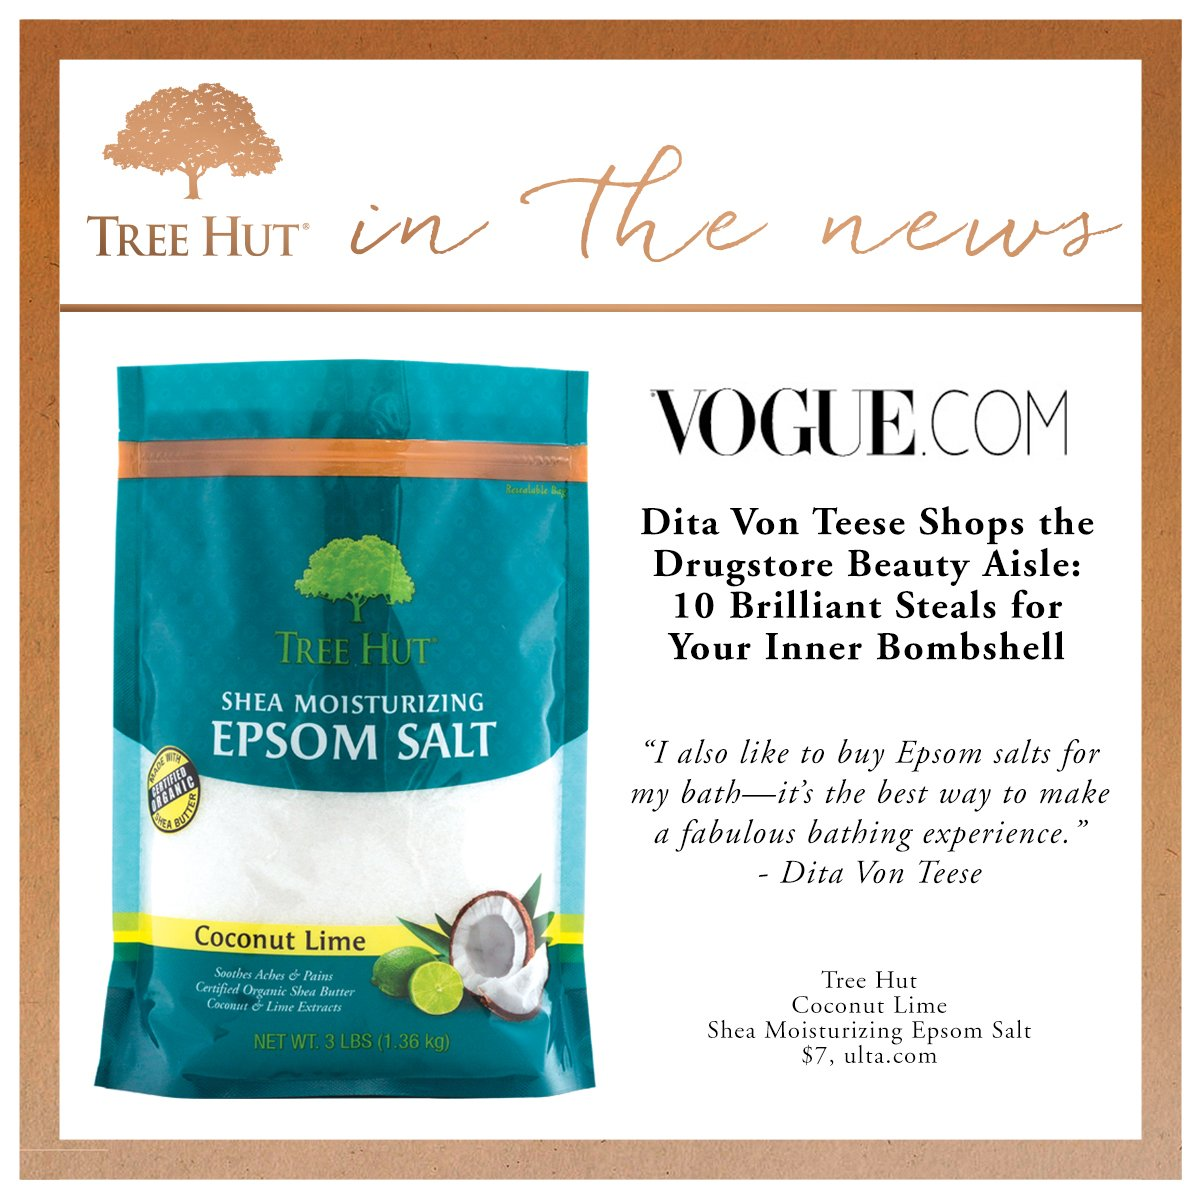 We're one of @voguemagazine's favorite #drugstorefinds! @DitaVonTeese #crueltyfree #beauty #beautyproducts https://t.co/7dnms3YHLy